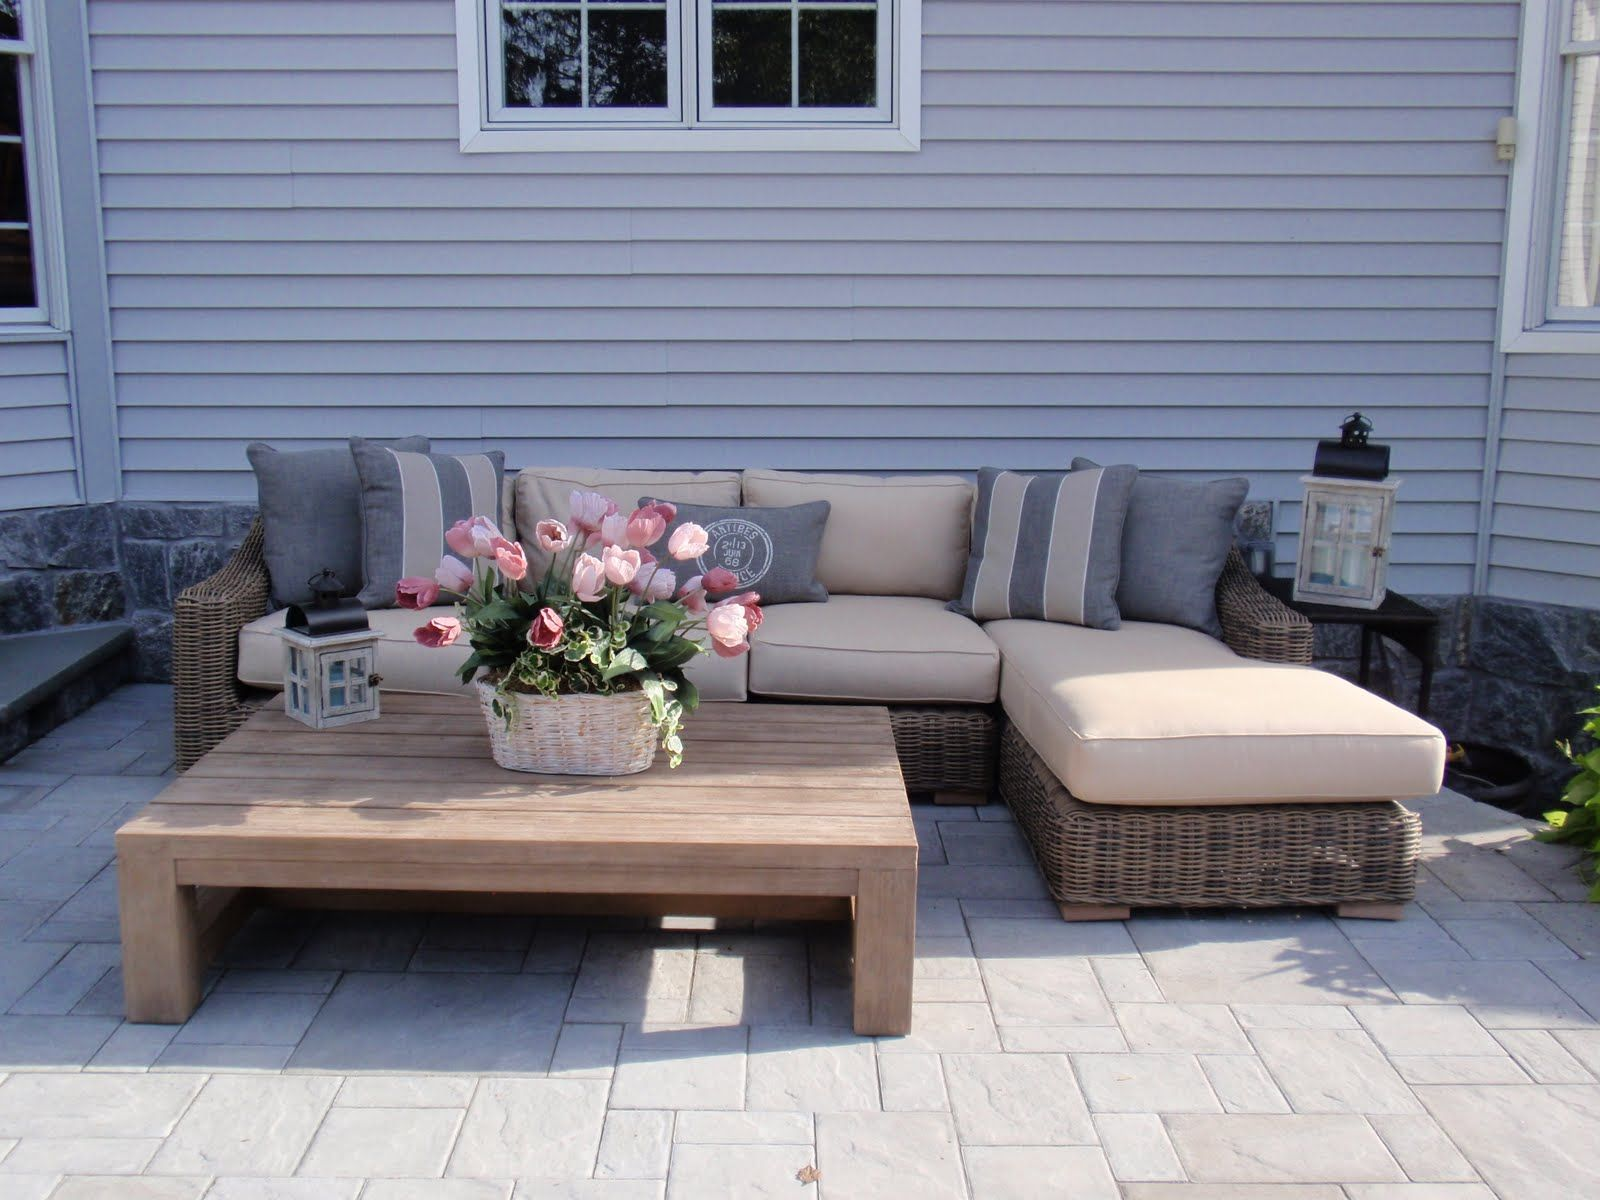 22 Awesome Outdoor Patio Furniture Options and Ideas | Brown ...